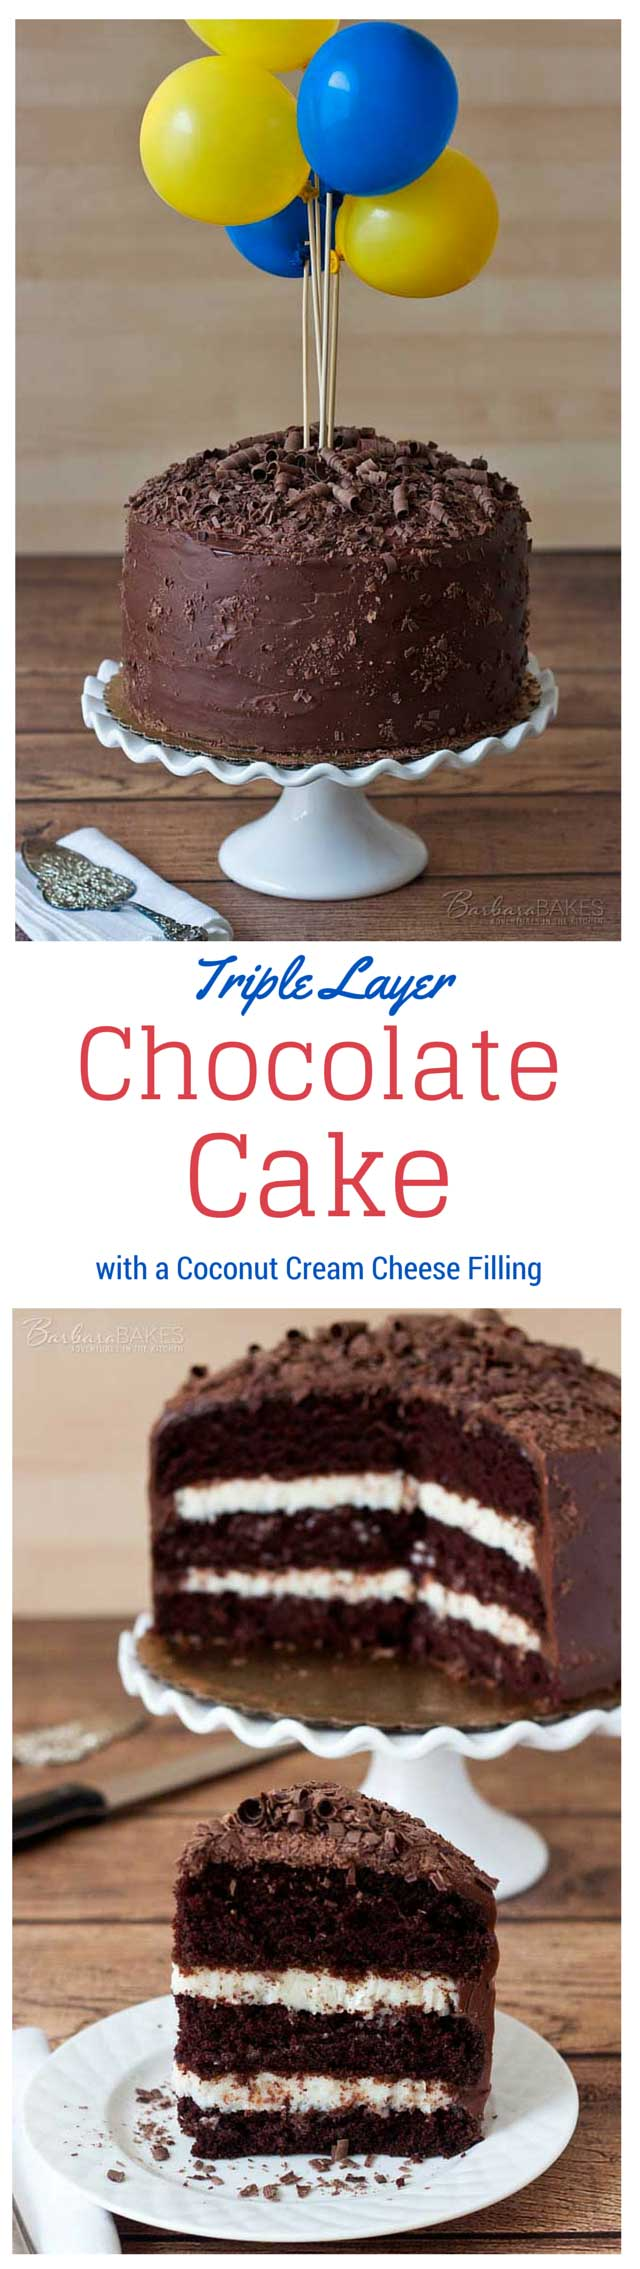 A Triple Layer Chocolate Cake With Coconut Cream Cheese Filling